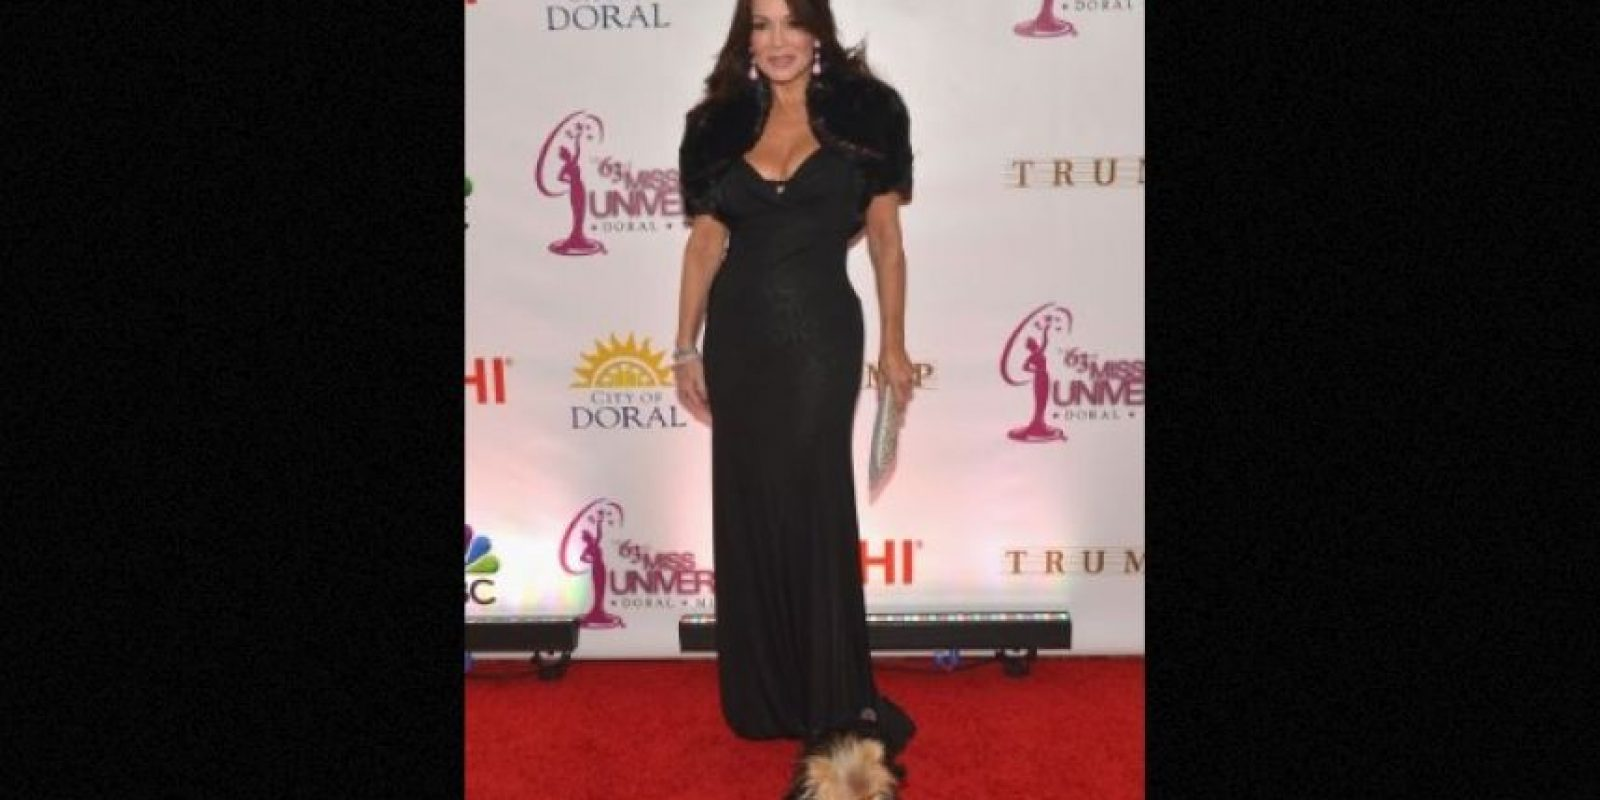 Lisa Vanderpump Foto: Getty Images